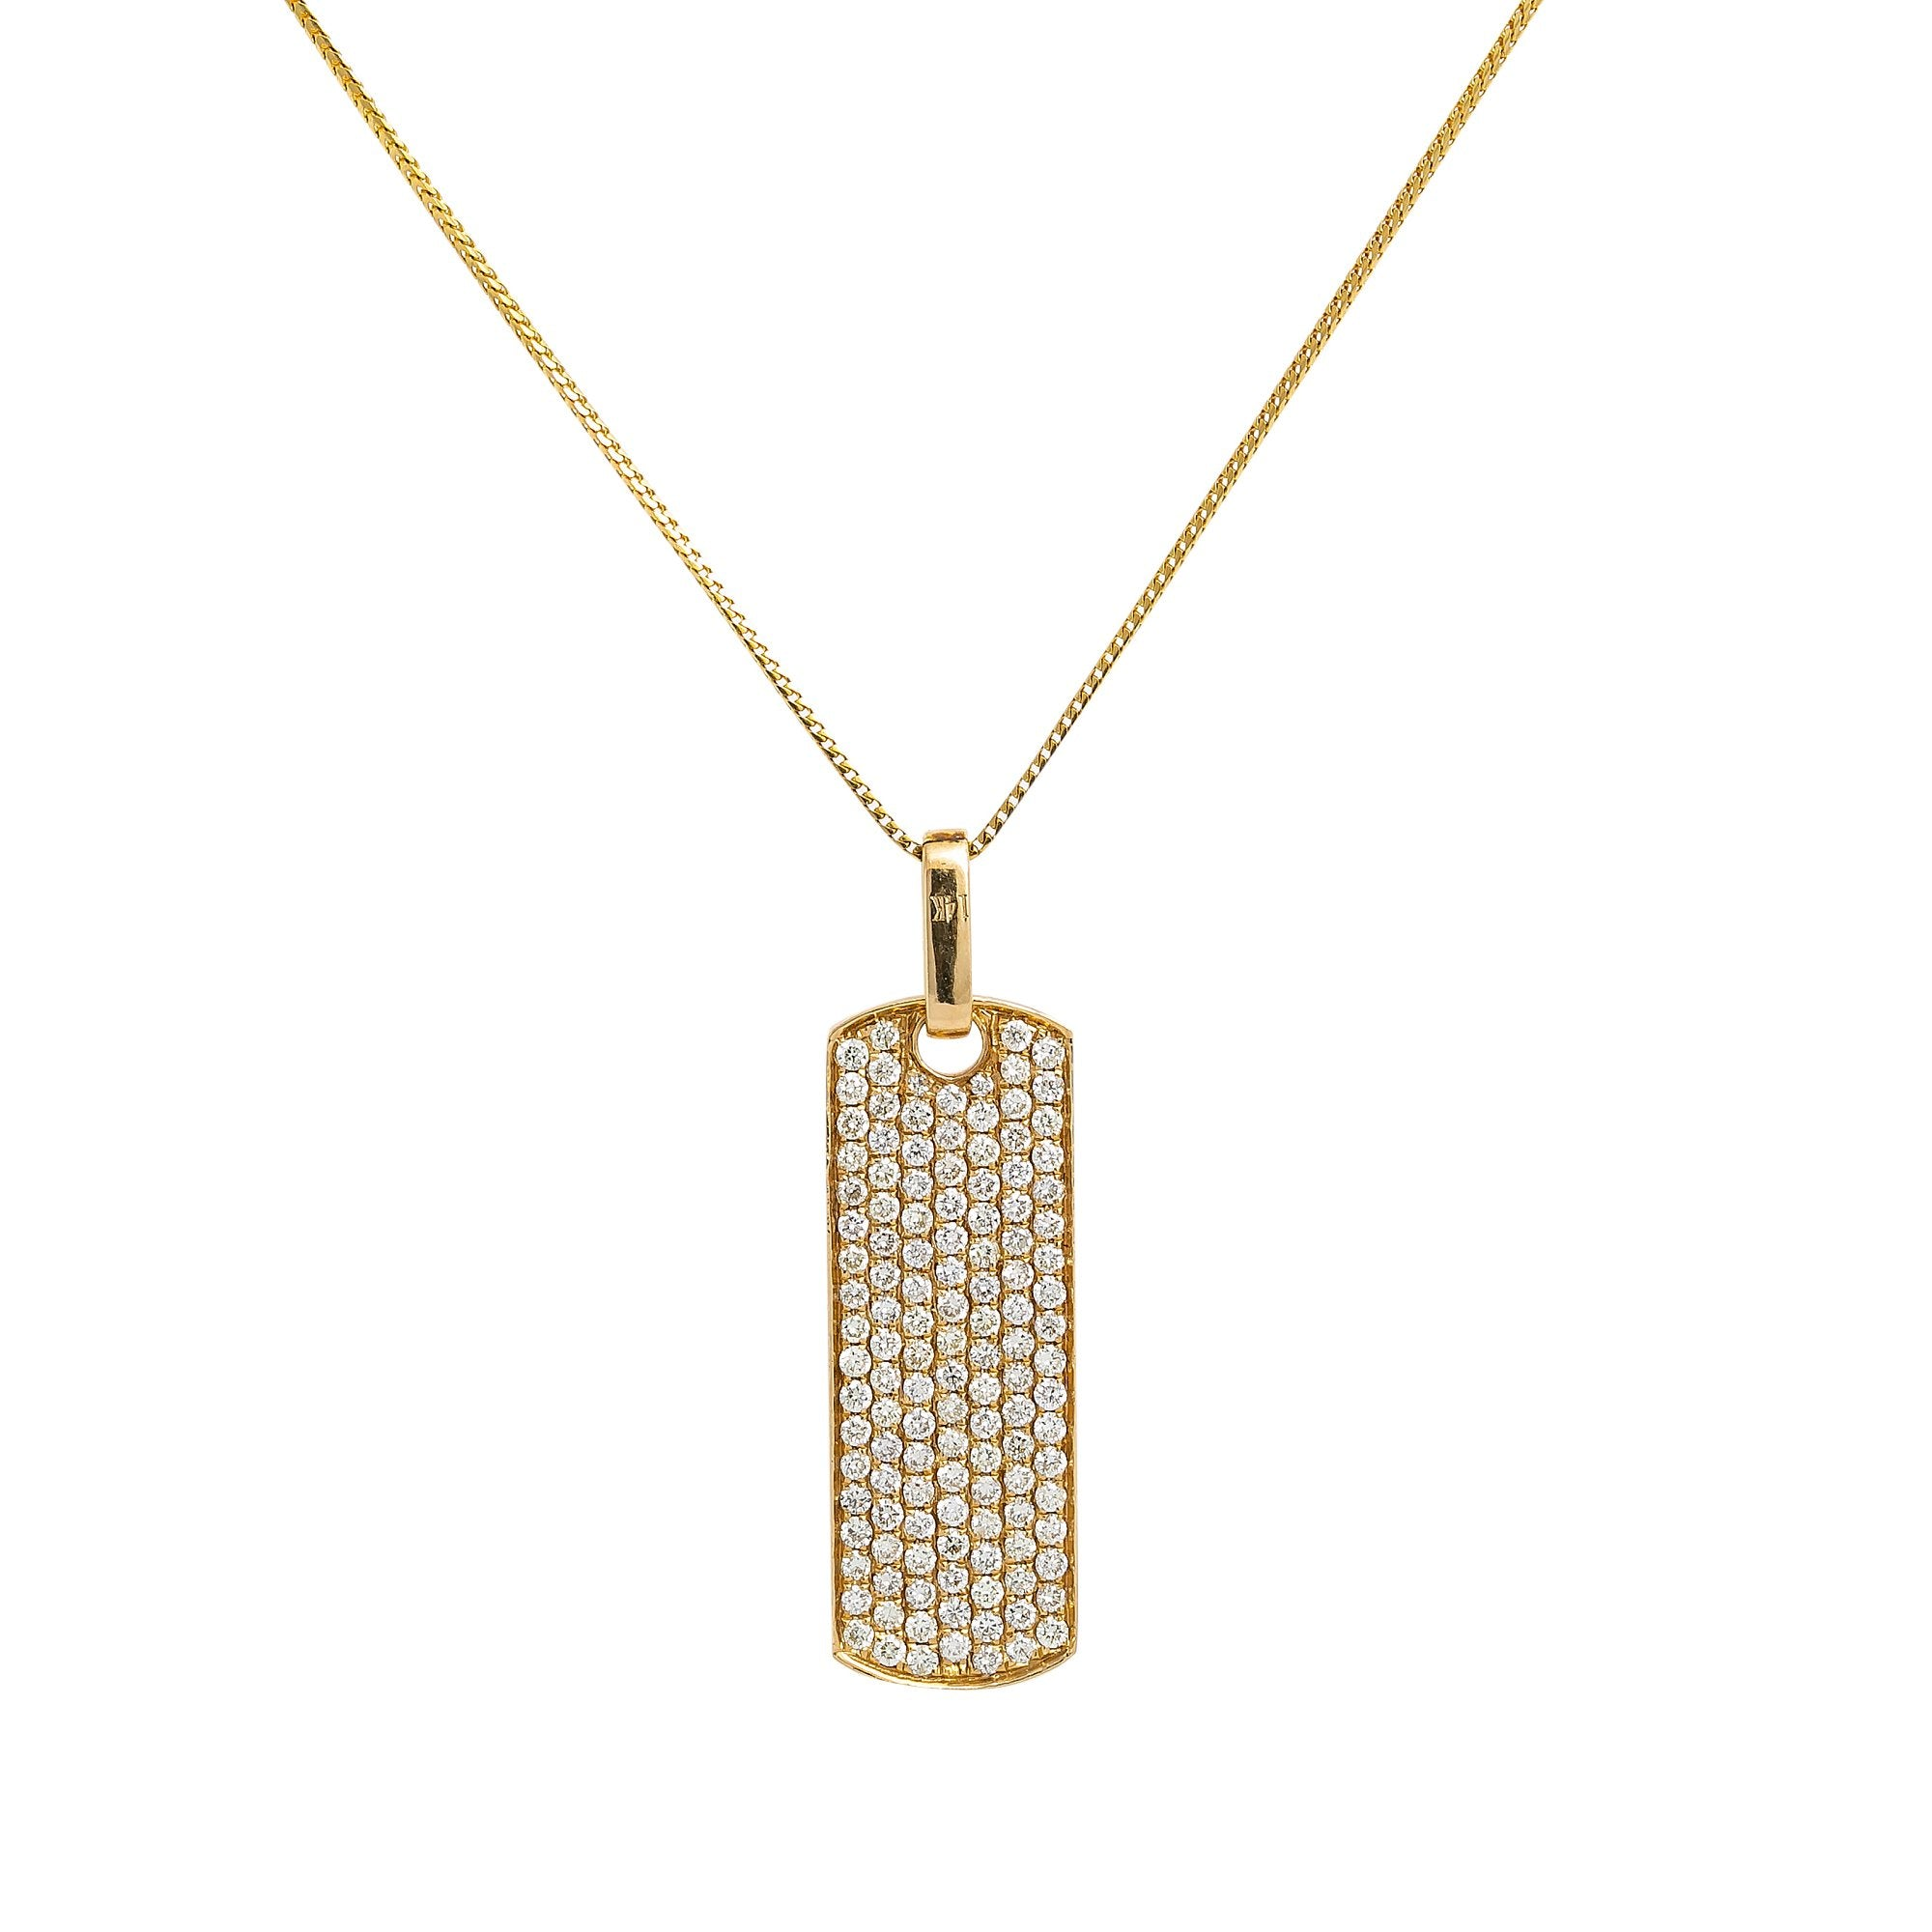 Unisex 14K Yellow Gold Rectangle Pendant with 1.70 CT Diamonds